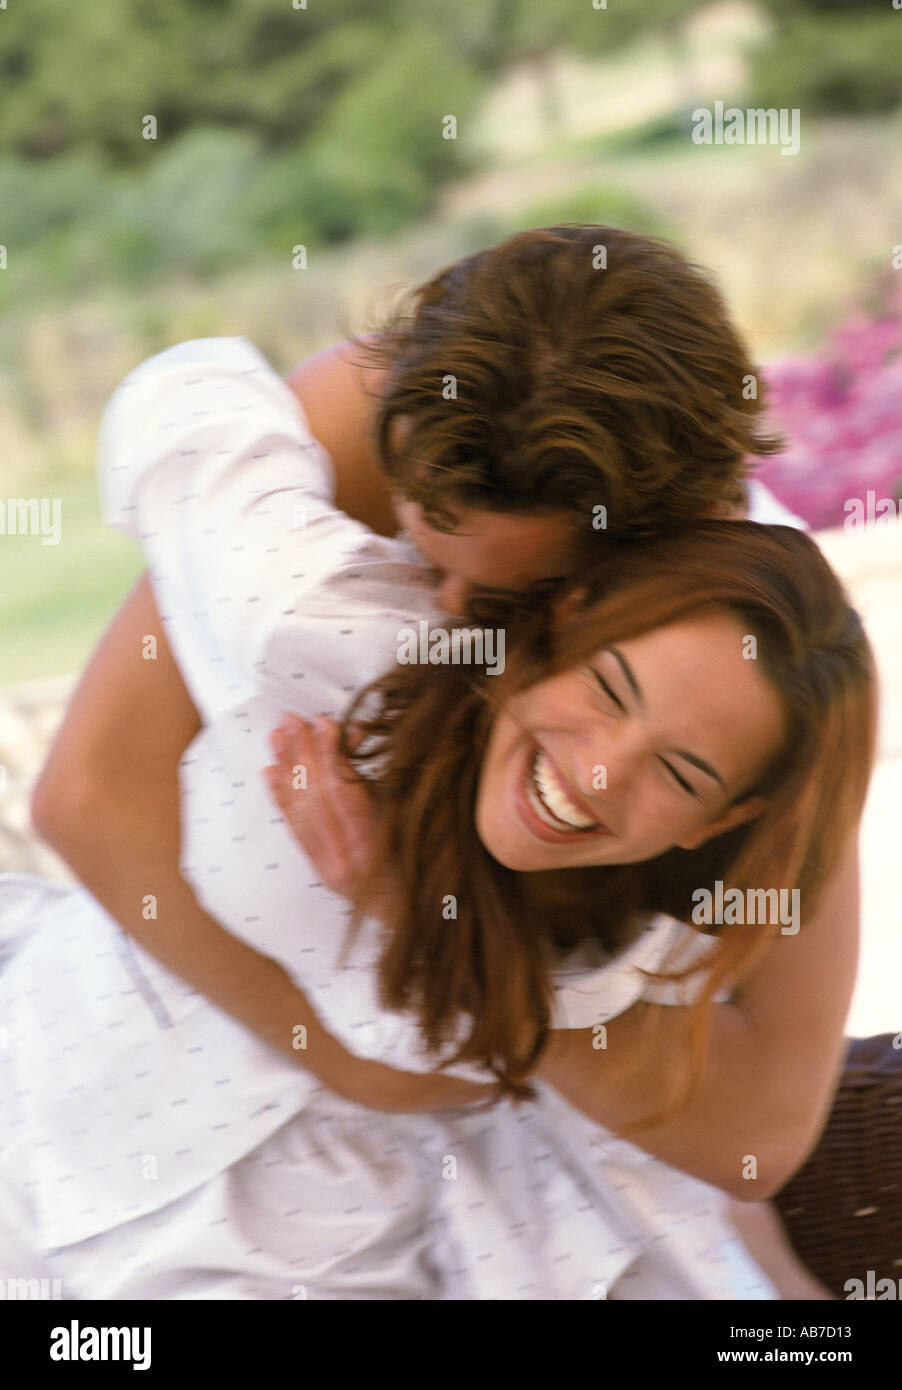 Couple in pyjamas - Stock Image